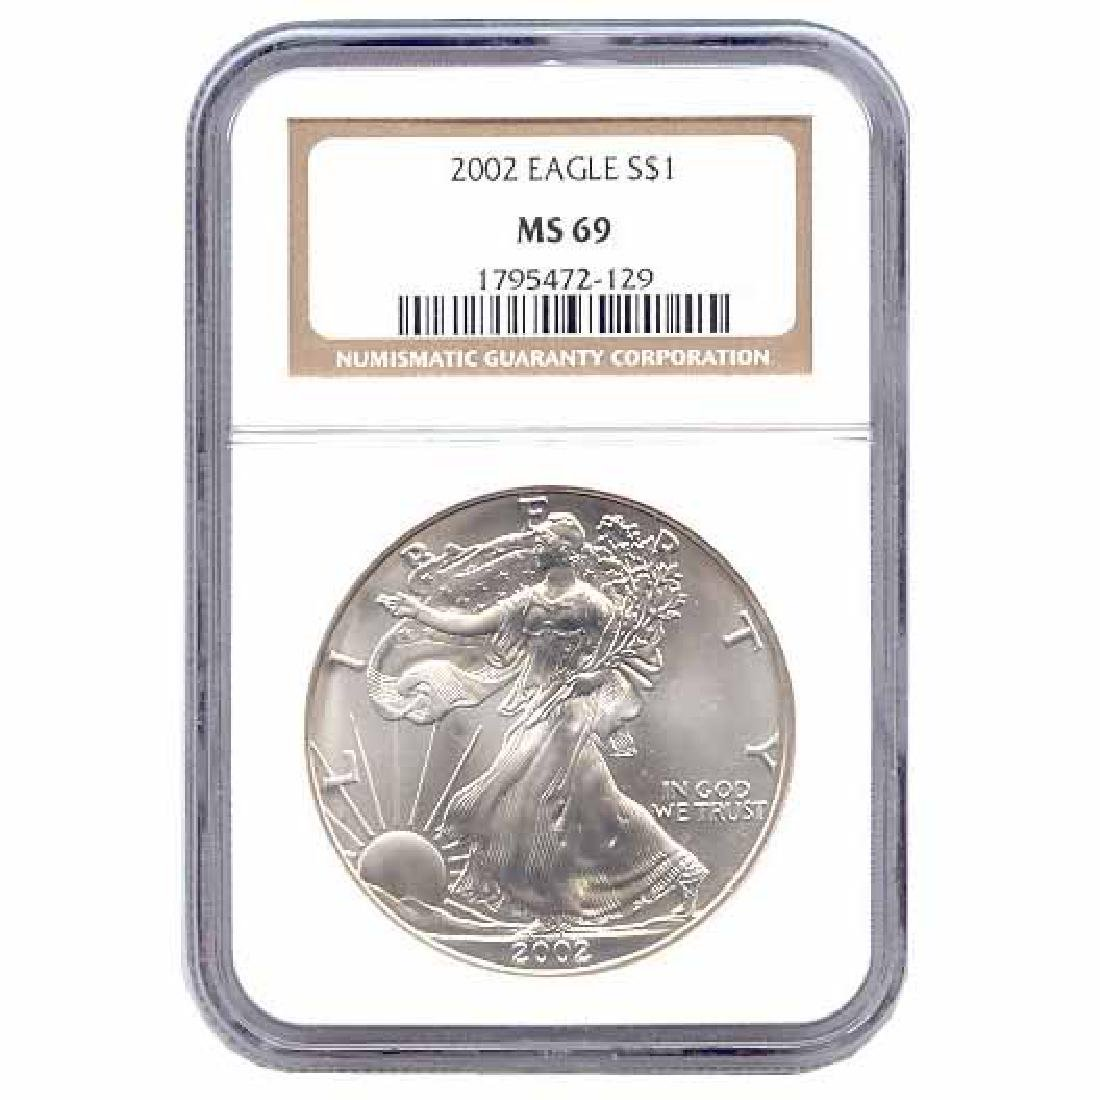 Certified Uncirculated Silver Eagle 2002 MS69